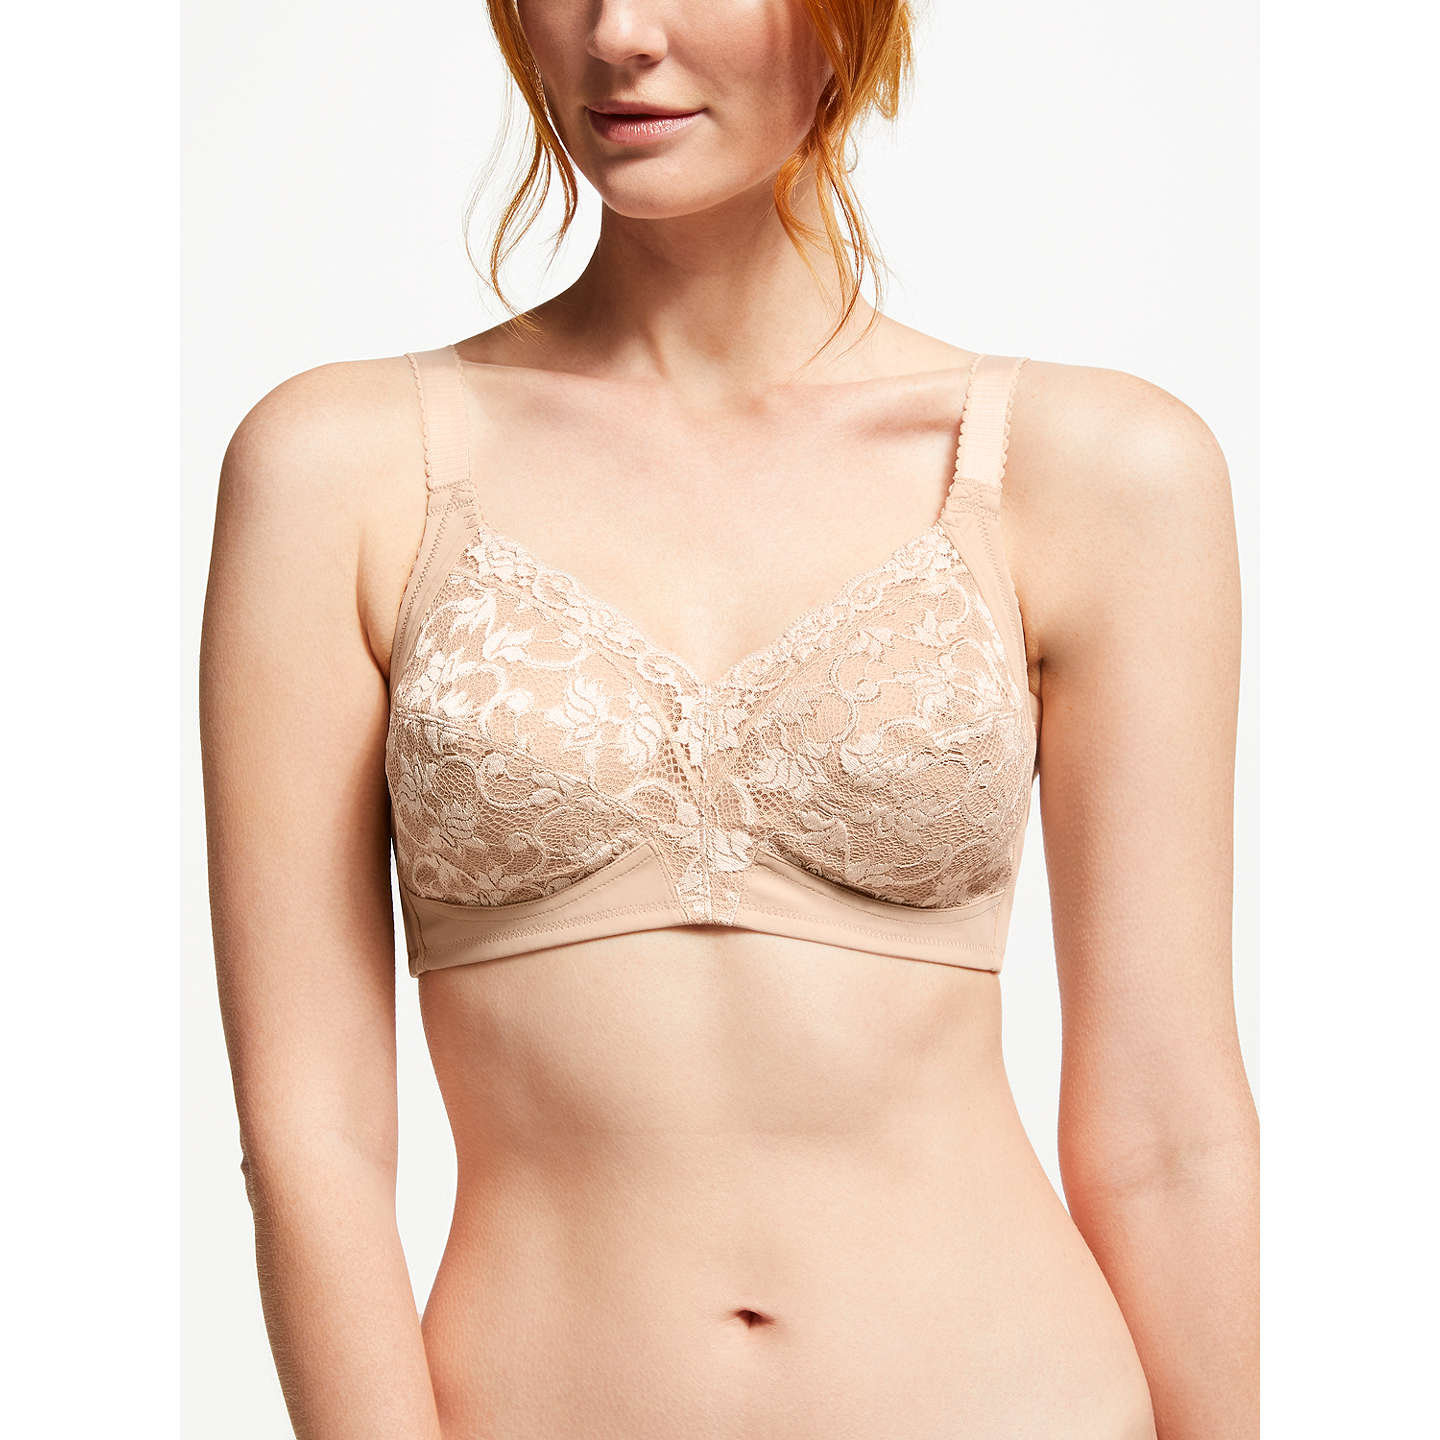 BuyTriumph Delicate Doreen Full Cup Bra, Smooth Skin, 34B Online at johnlewis.com